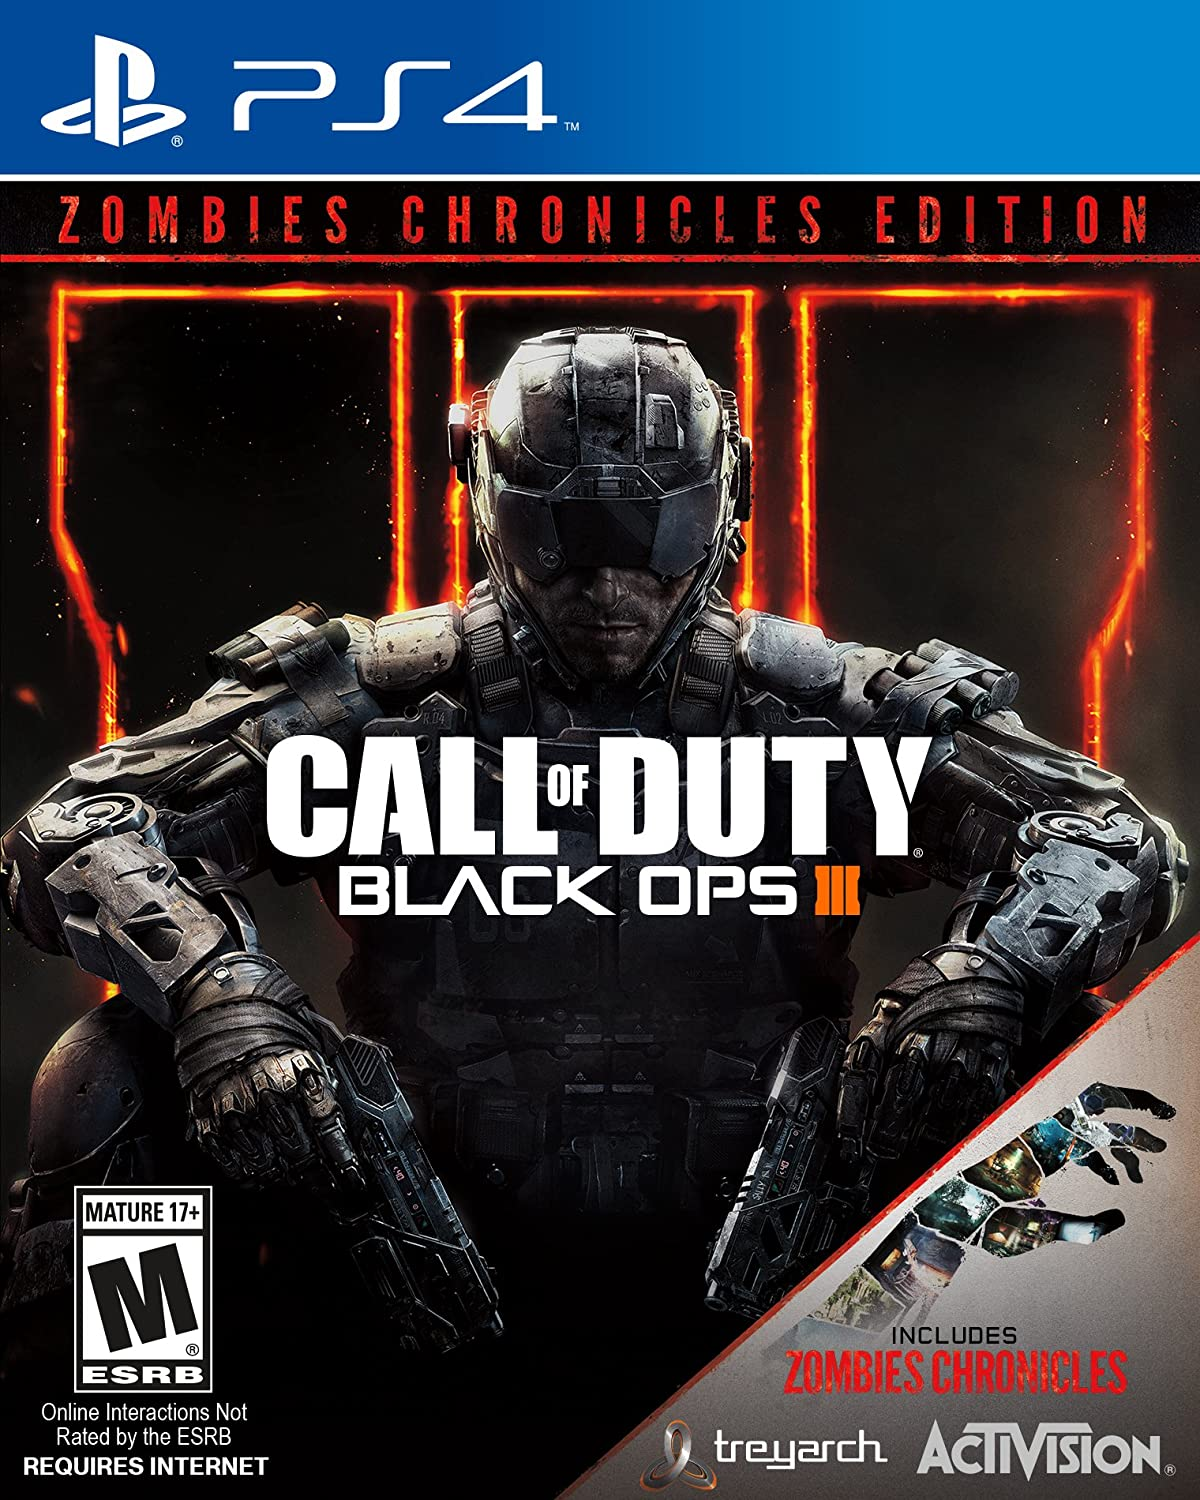 Call of Duty Black Ops III Chronicles Factory outlet - Philadelphia Mall PlayStation Zombie 4